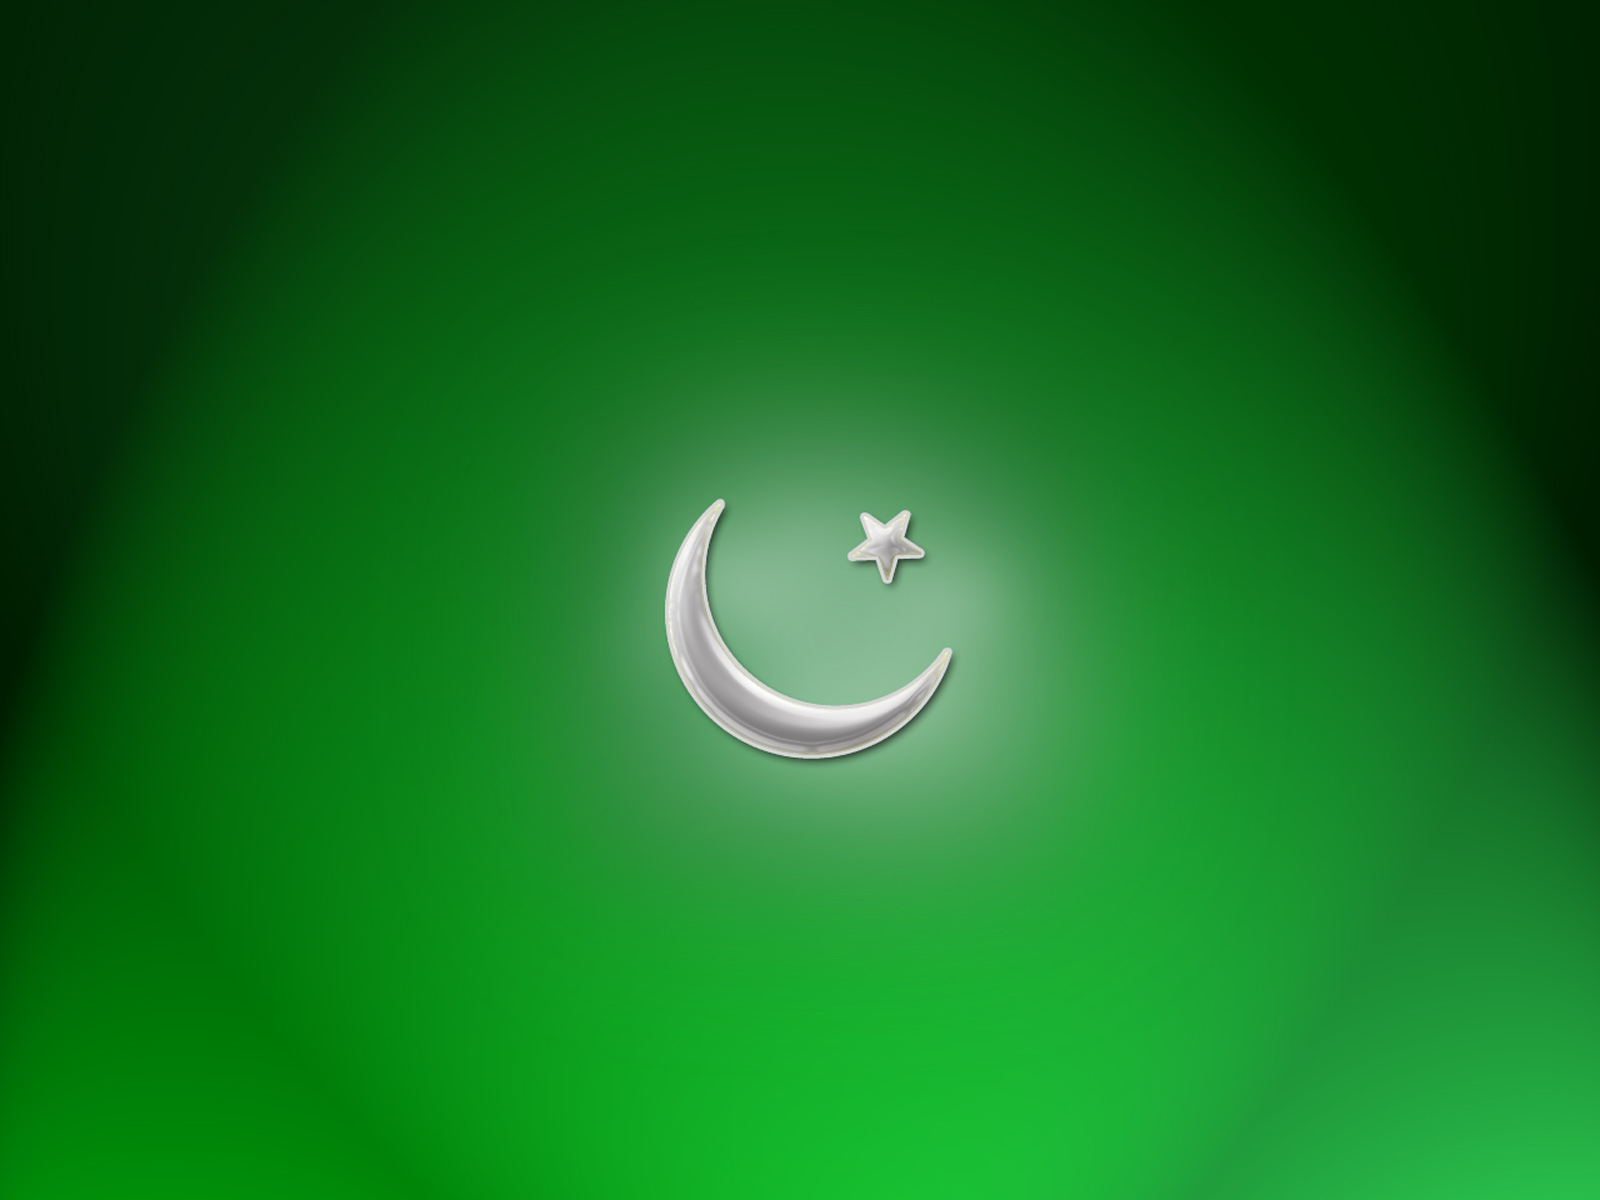 Pakistan Flag Beautiful Wallpapers 2013 Wallpaper 1600x1200